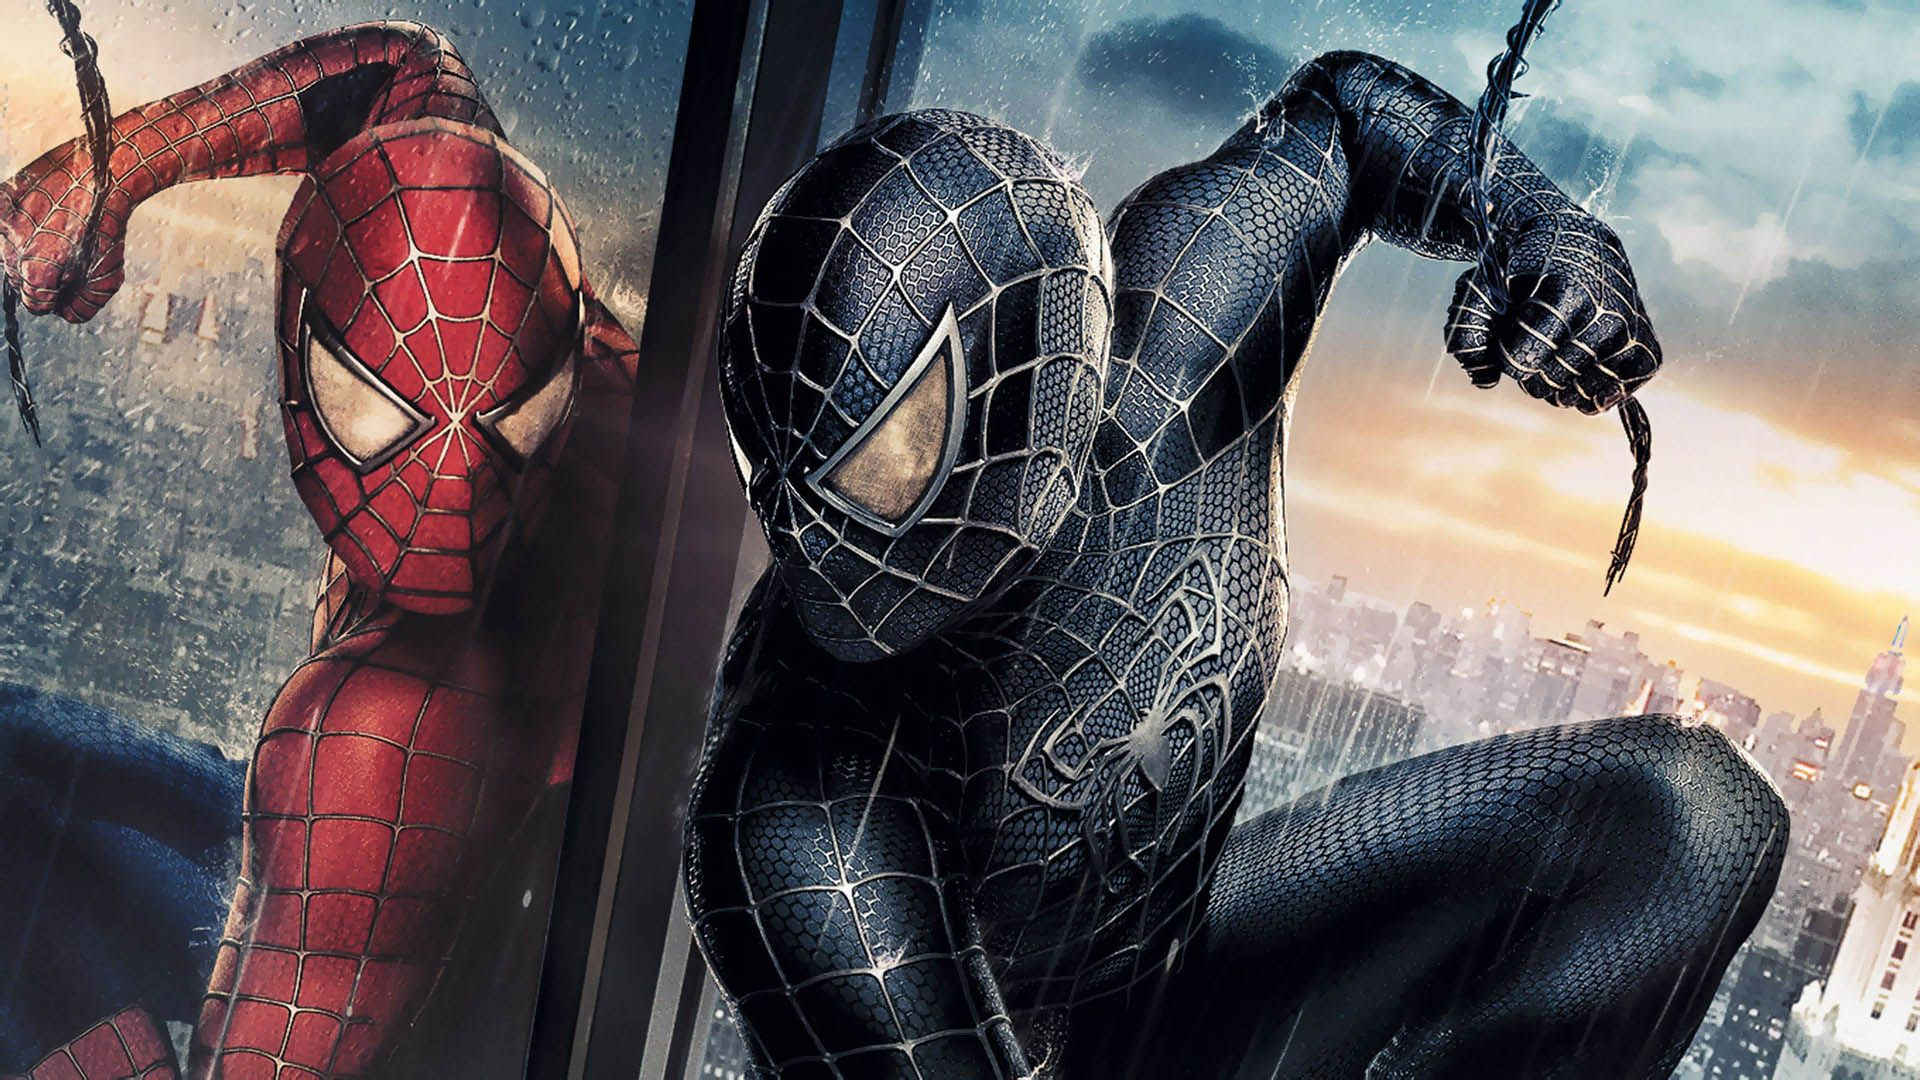 Pin By Em Joshua On Wallpaper In 2020 Spiderman Spiderman 3 Spider Man Trilogy